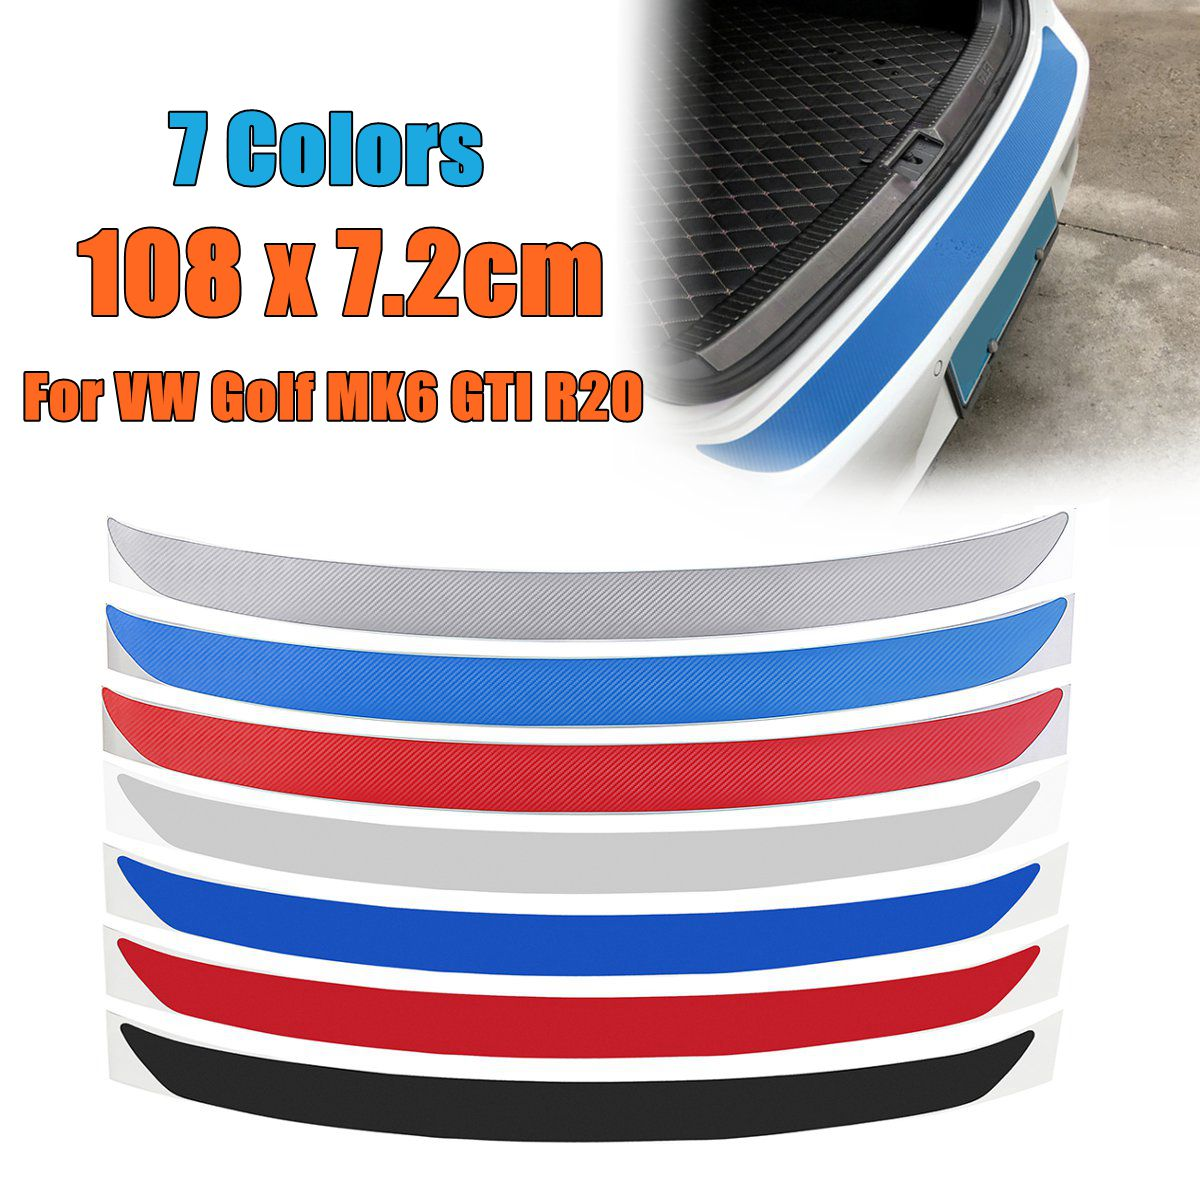 1Pc Carbon Fiber Rear Bumper Protector Sticker Trim 7 Colors For <font><b>VW</b></font> <font><b>Golf</b></font> MK6 GTI R20 Car-Styling Sticker And Decals 108x7.2cm image